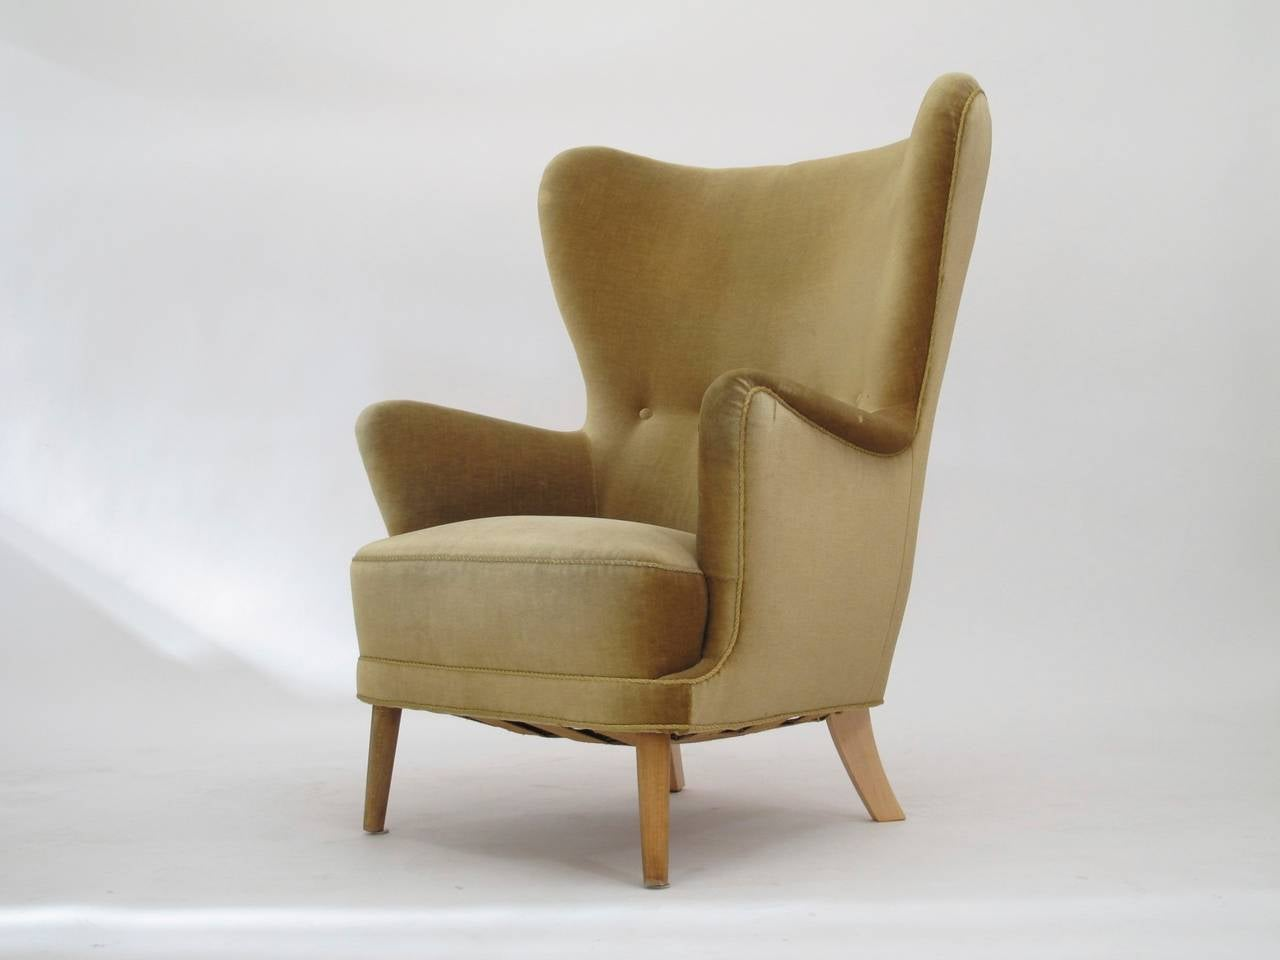 Sculptural Mid-Century Danish high back lounge chair in manner of Jacob Kjær. Constructed of solid wood frame with hand tied springs and horsehair padding, upholstered in original mohair fabric. Excellent back support and comfortable seating.